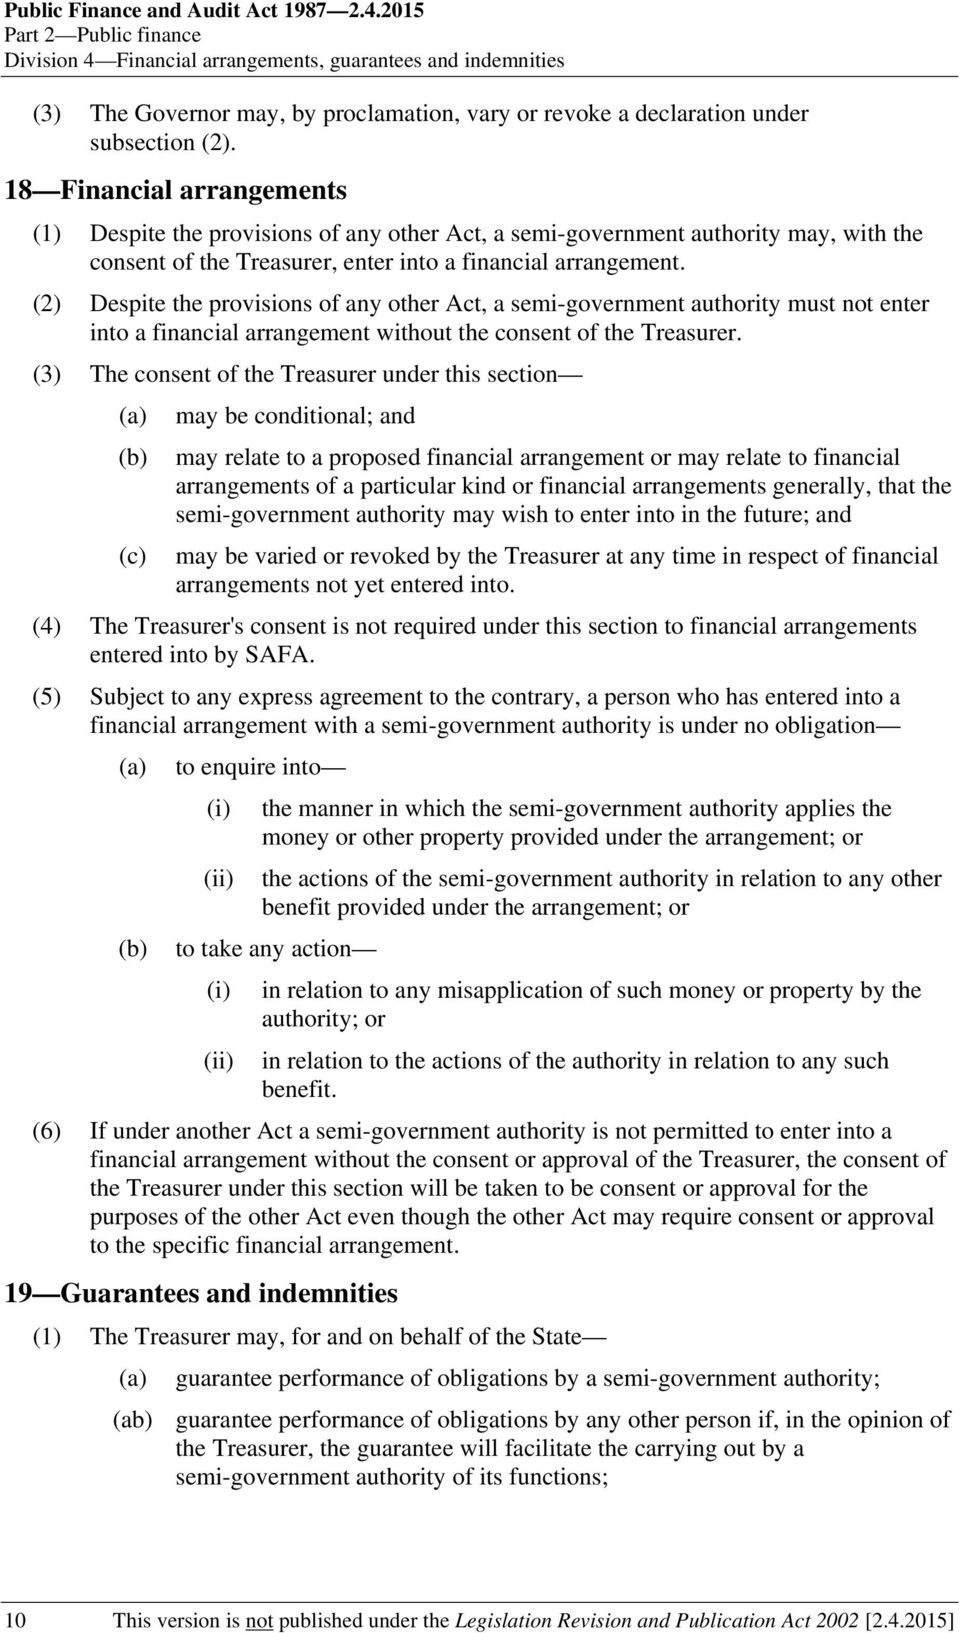 18 Financial arrangements (1) Despite the provisions of any other Act, a semi-government authority may, with the consent of the Treasurer, enter into a financial arrangement.